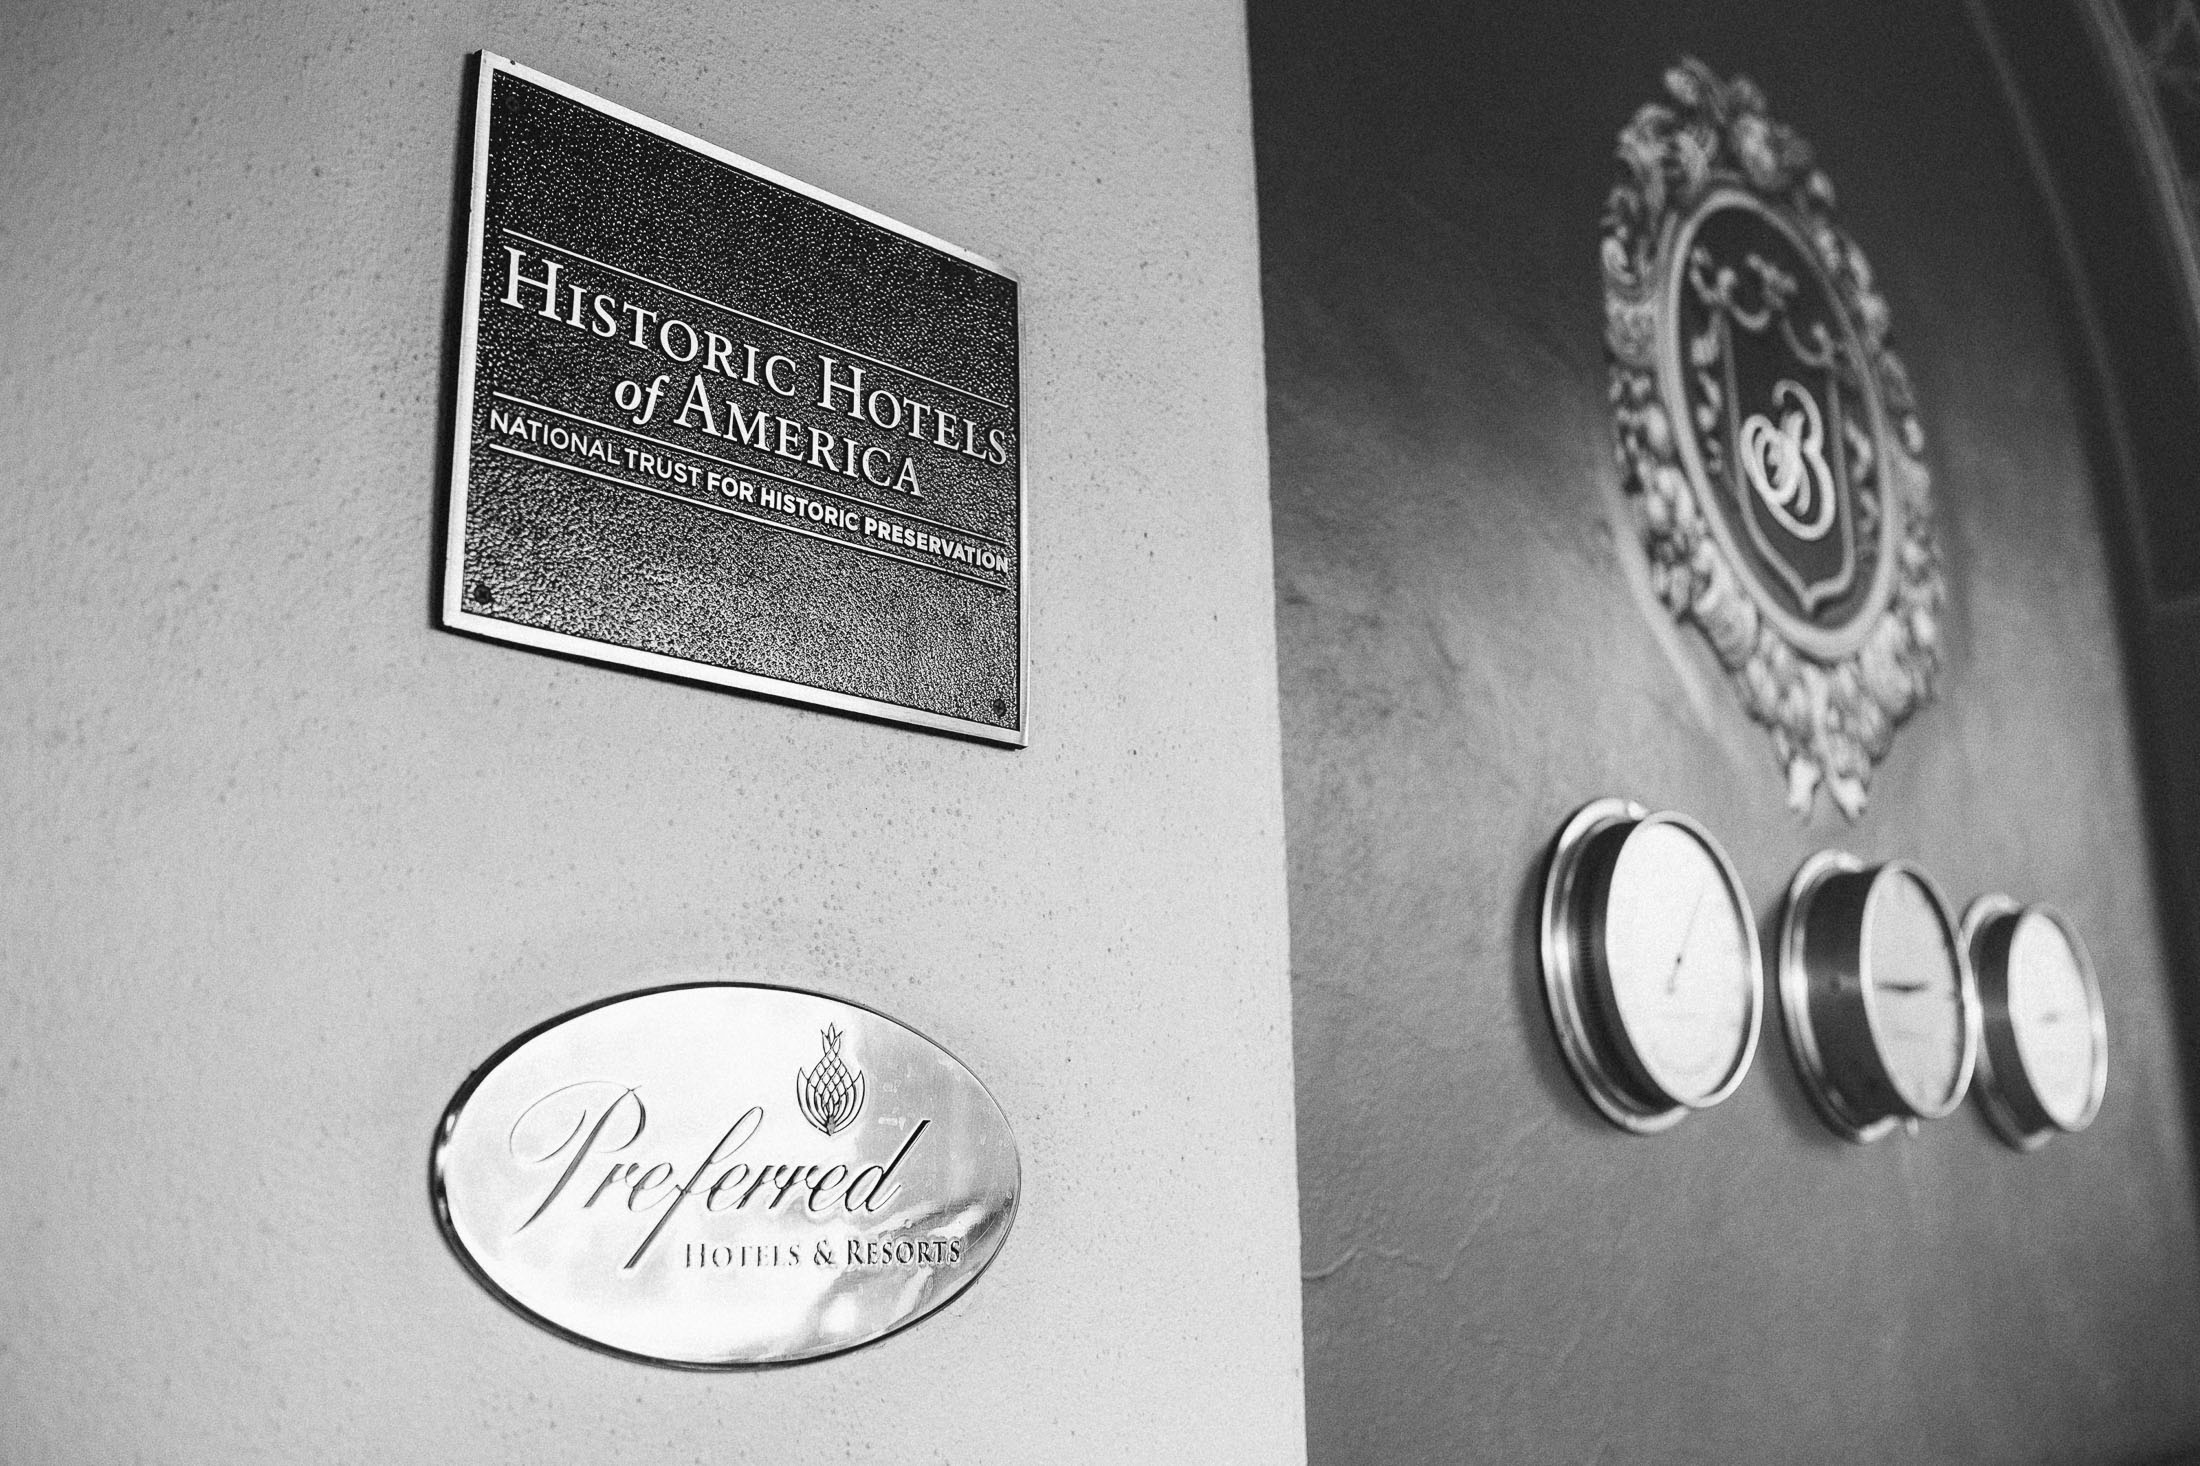 Black and white photograph displaying preferred hotel sign at The Broadmoor.